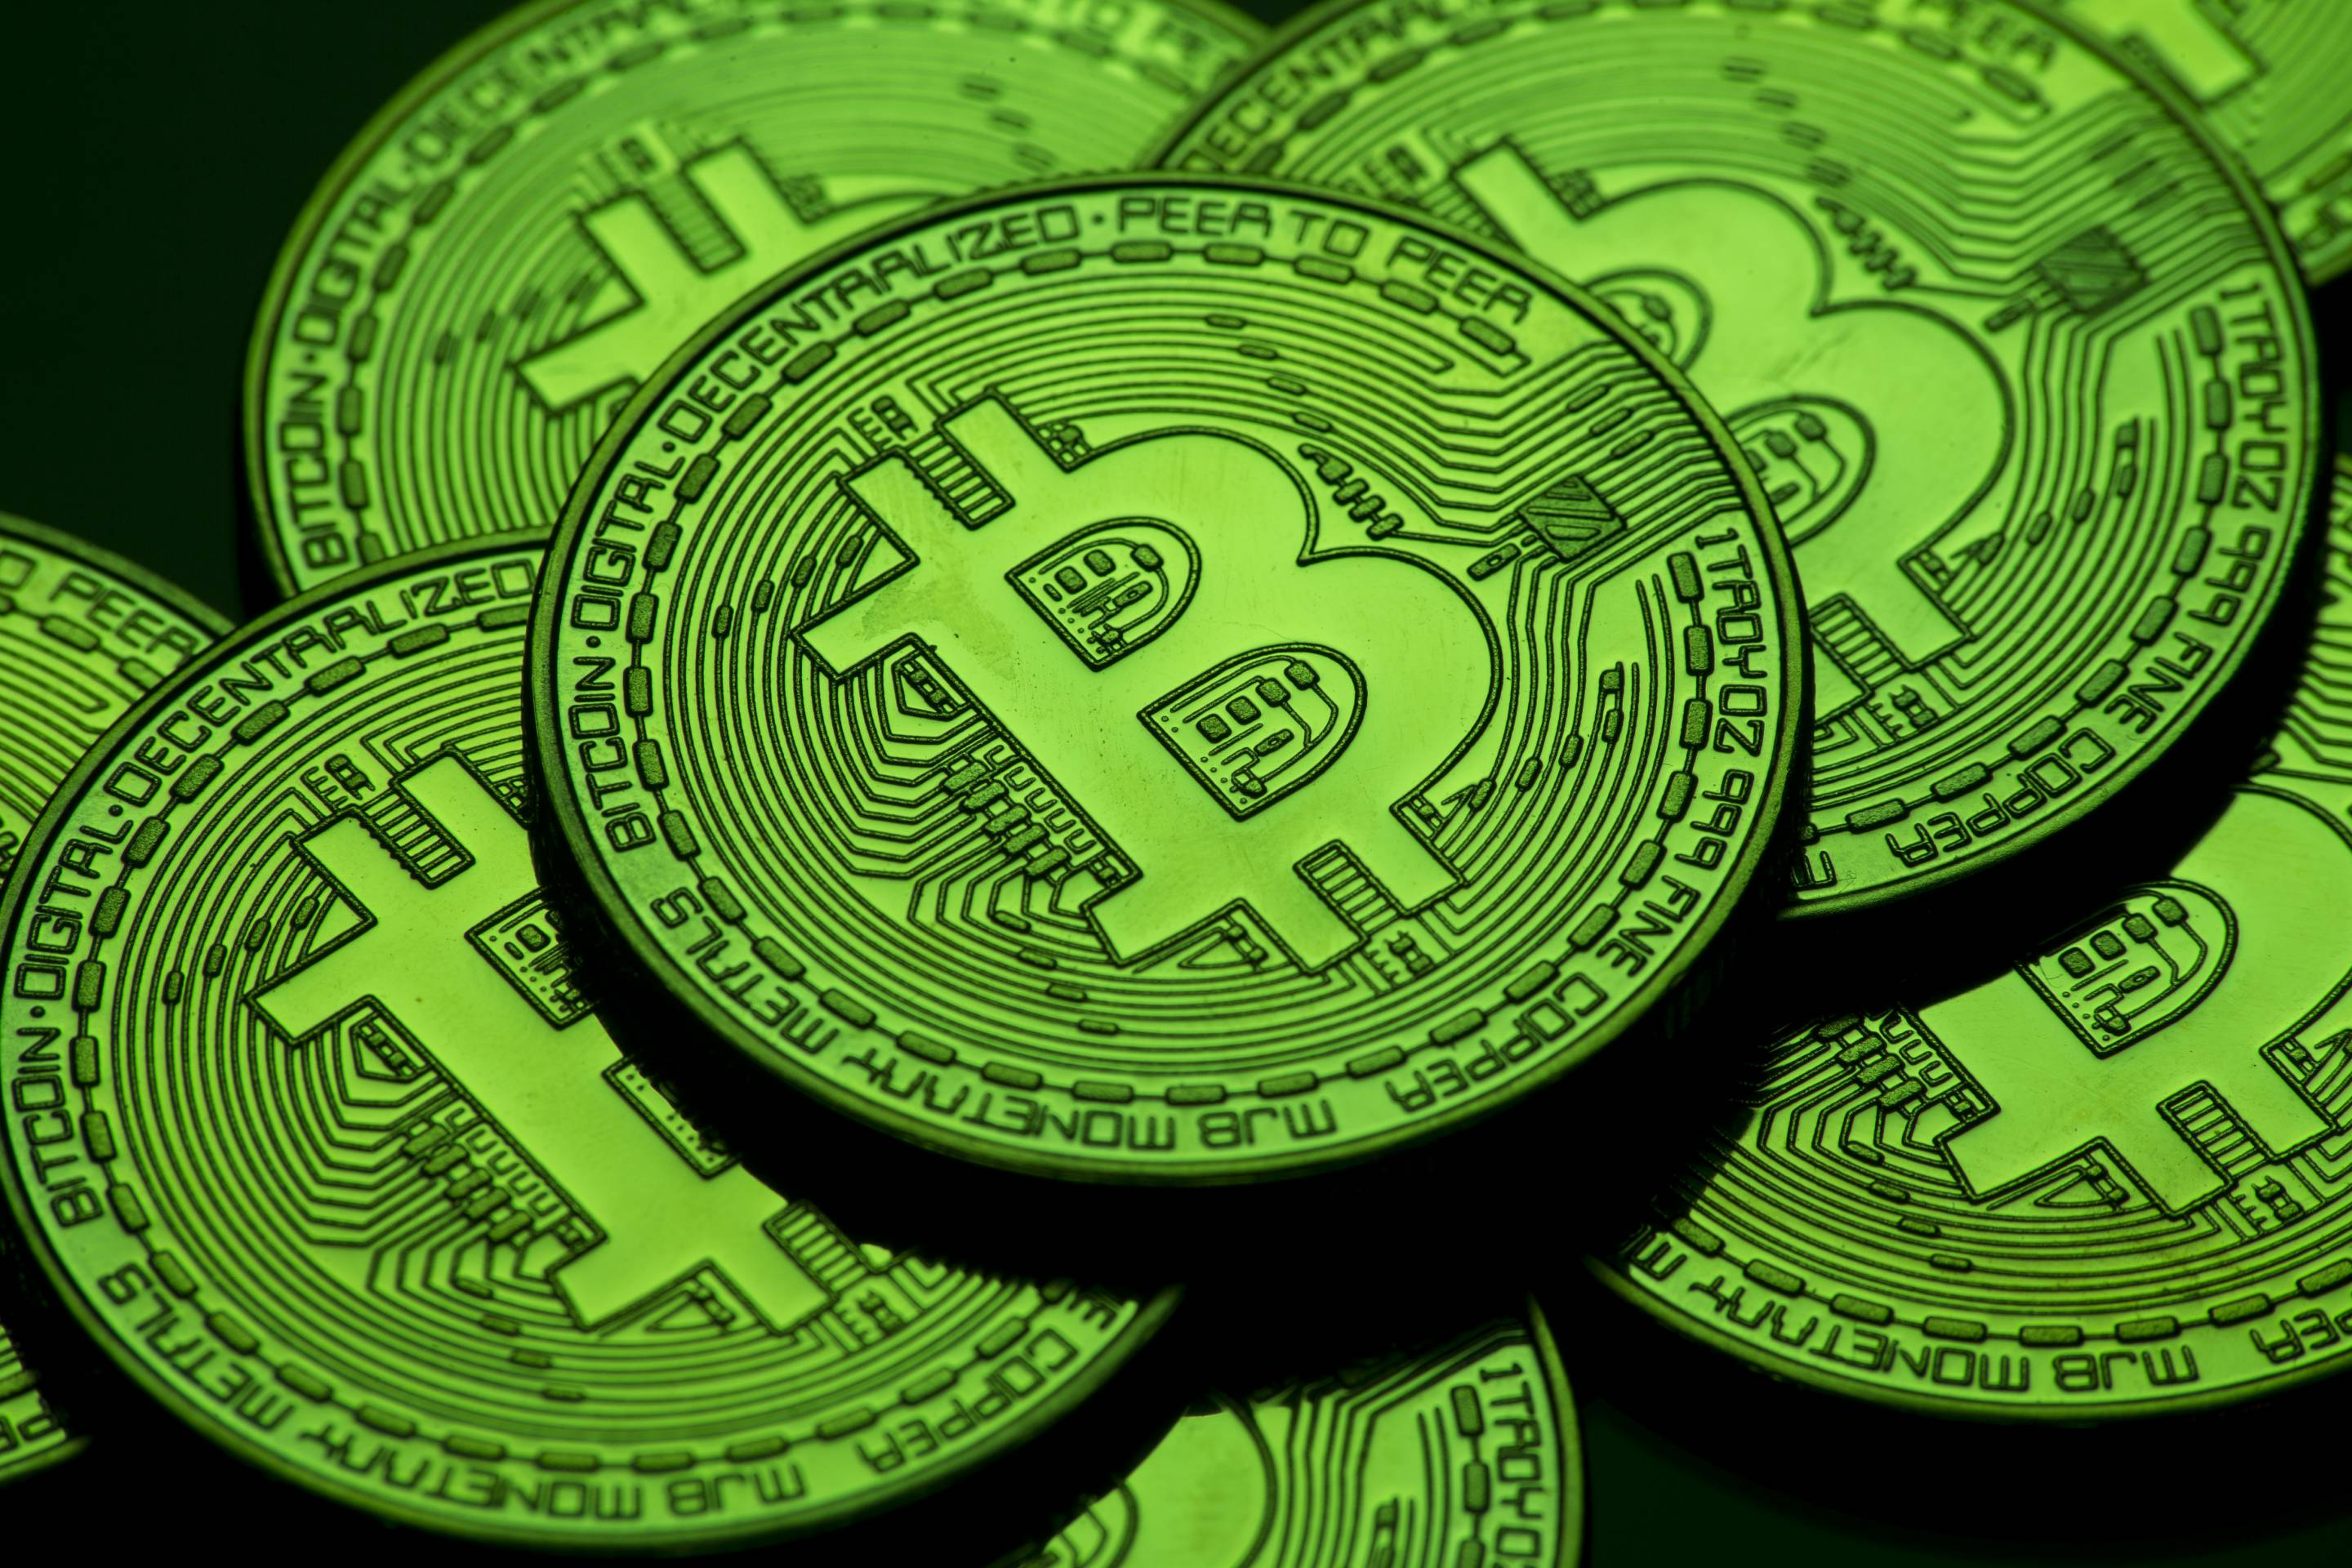 A green visual representation of the cryptocurrency Bitcoin.